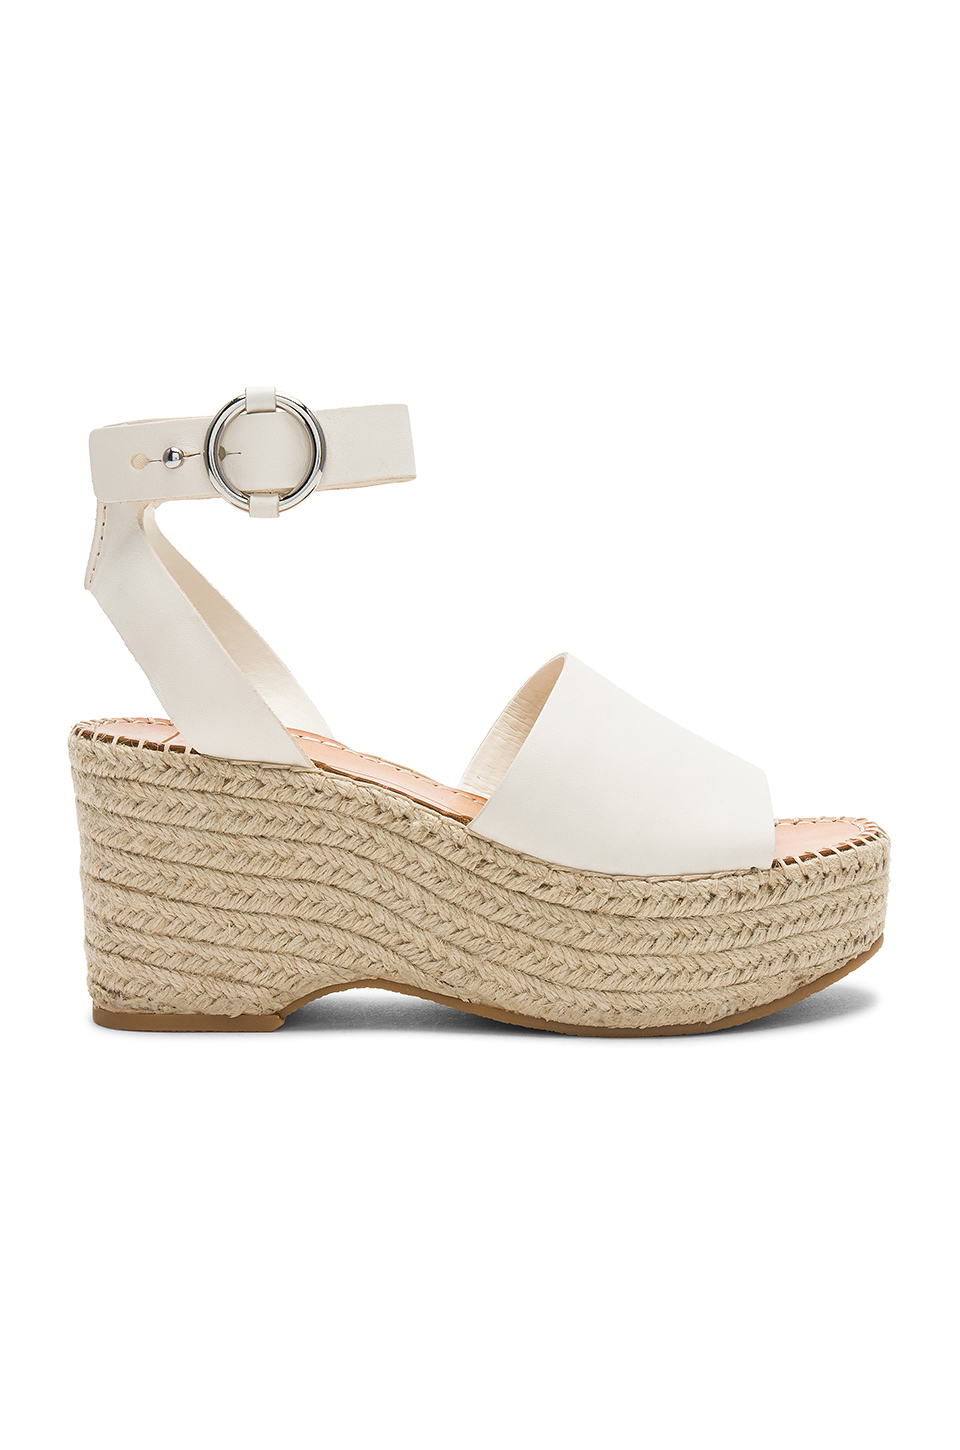 45a9fc4ea245 Dolce Vita Lesly Wedge  Dolce Vita Lesly Wedge ...